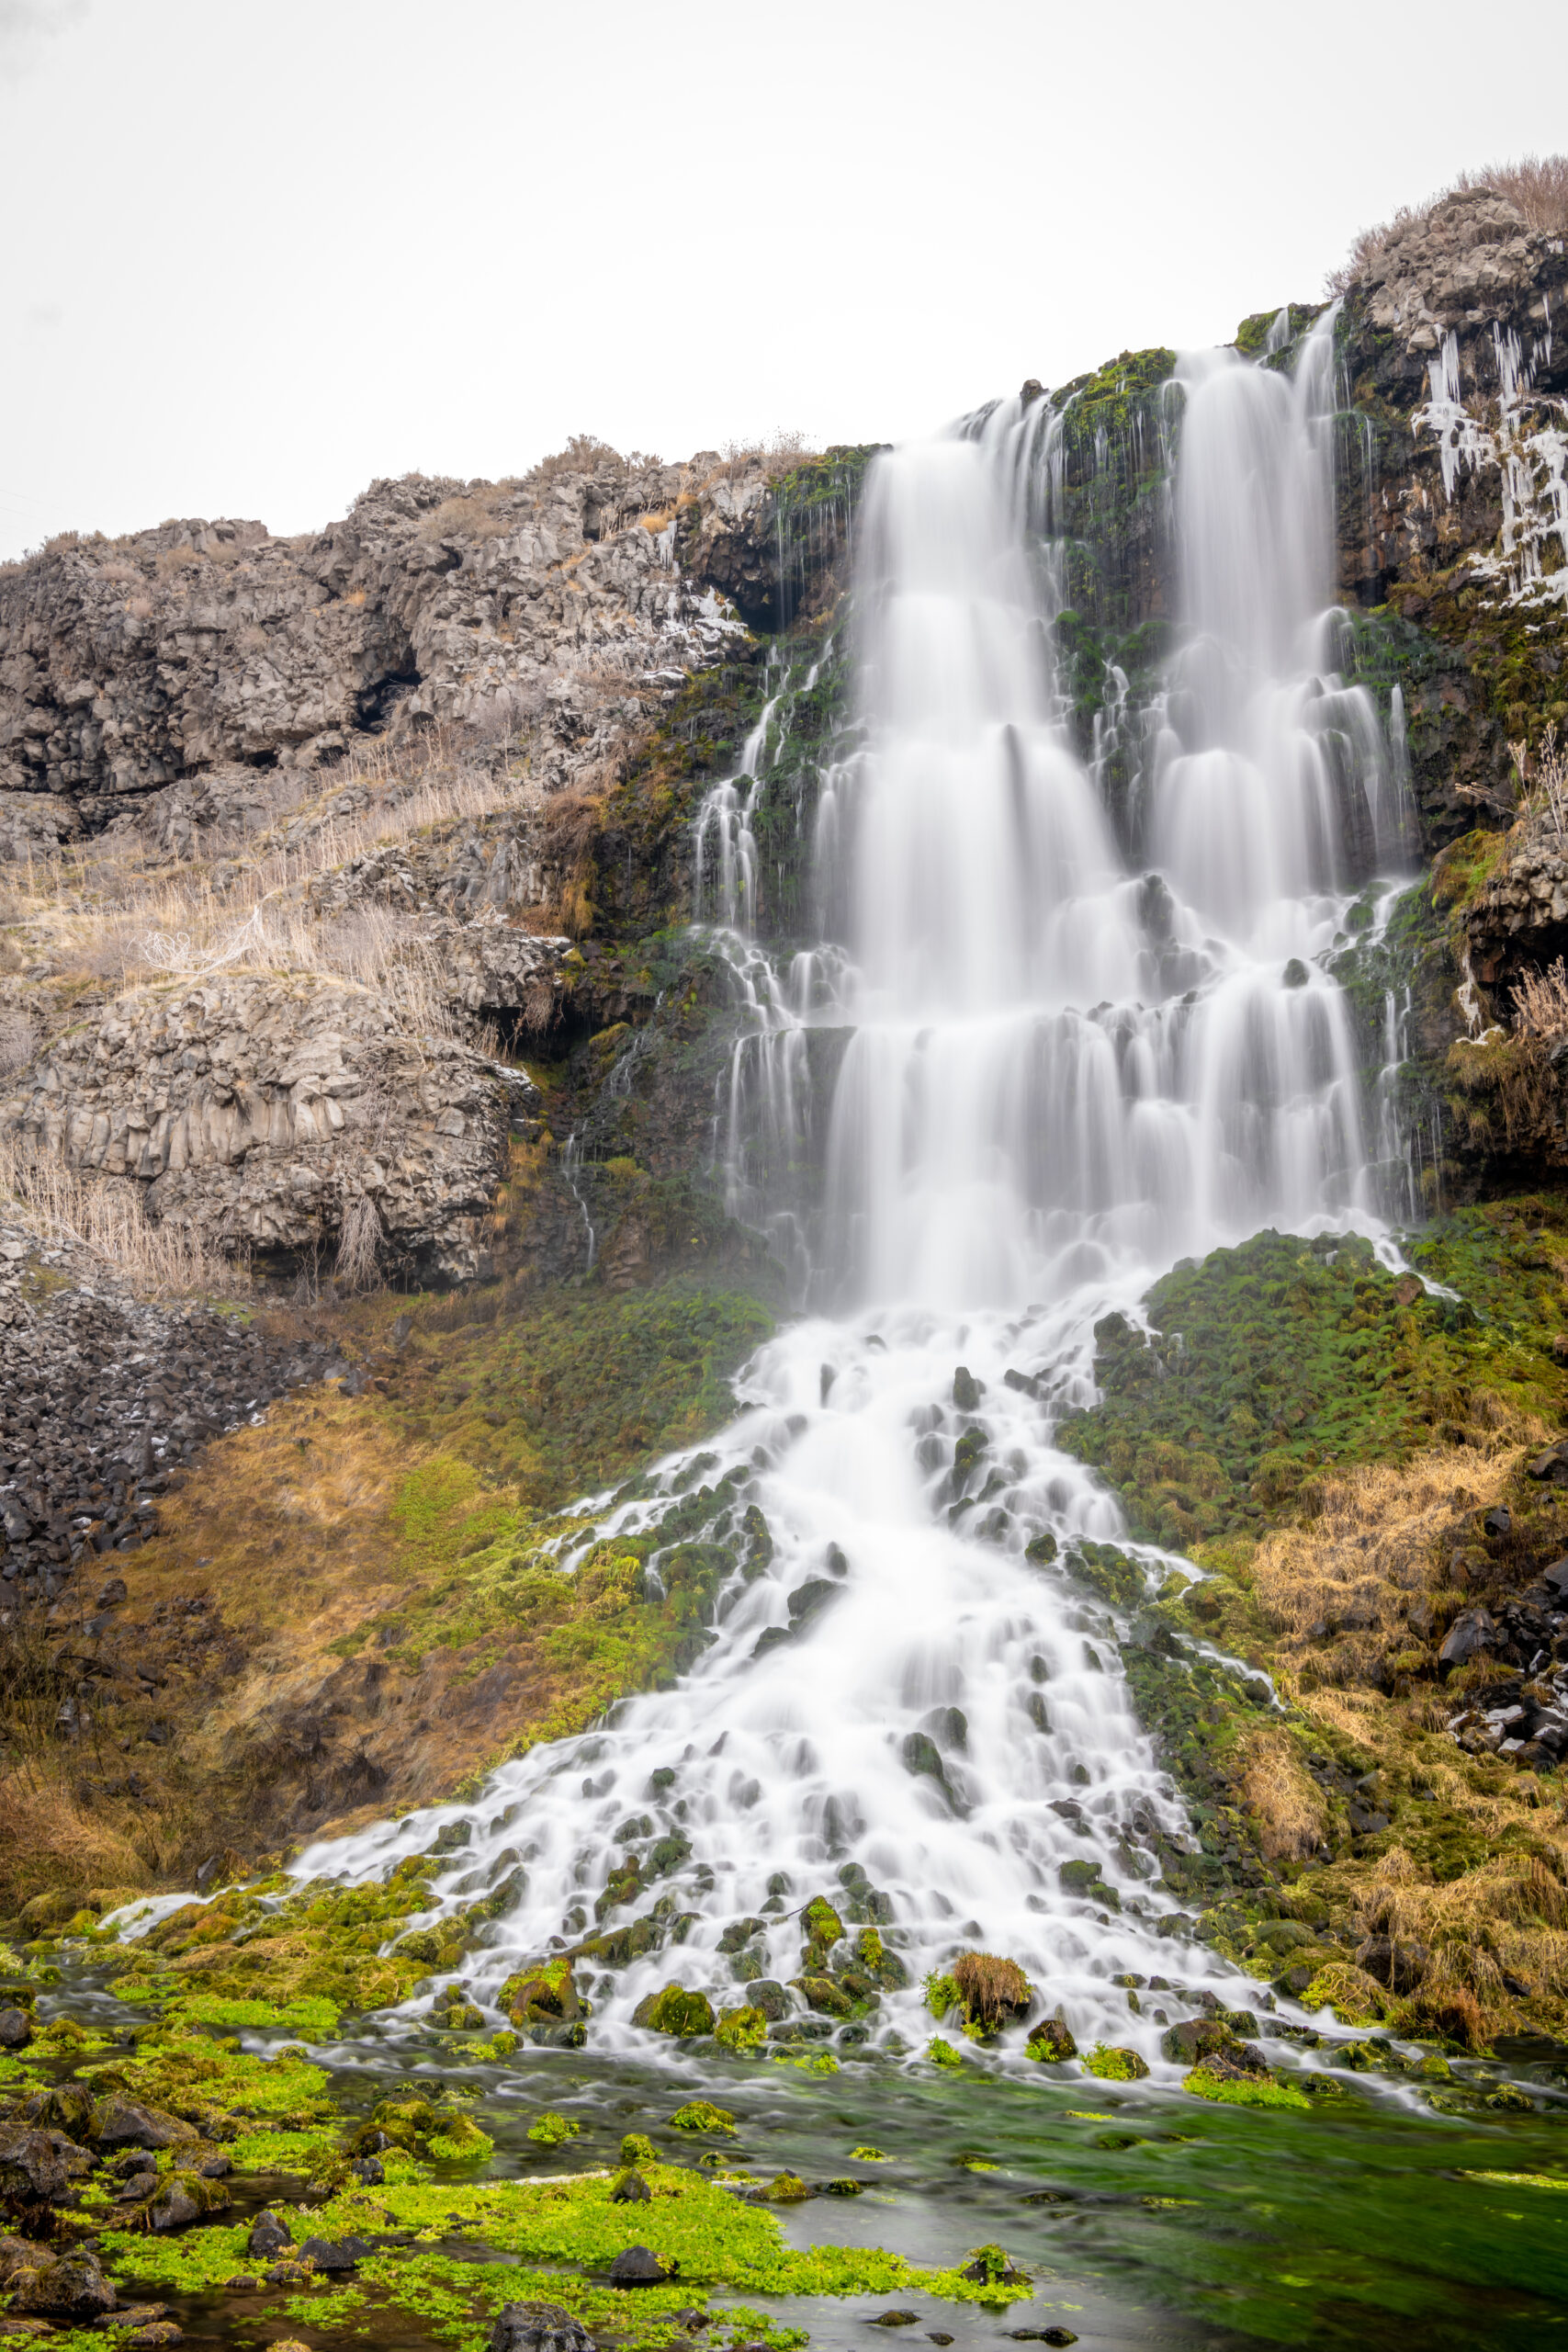 ritter island waterfall in thousand springs state park on a cloudy day, one of the most beautiful waterfalls idaho